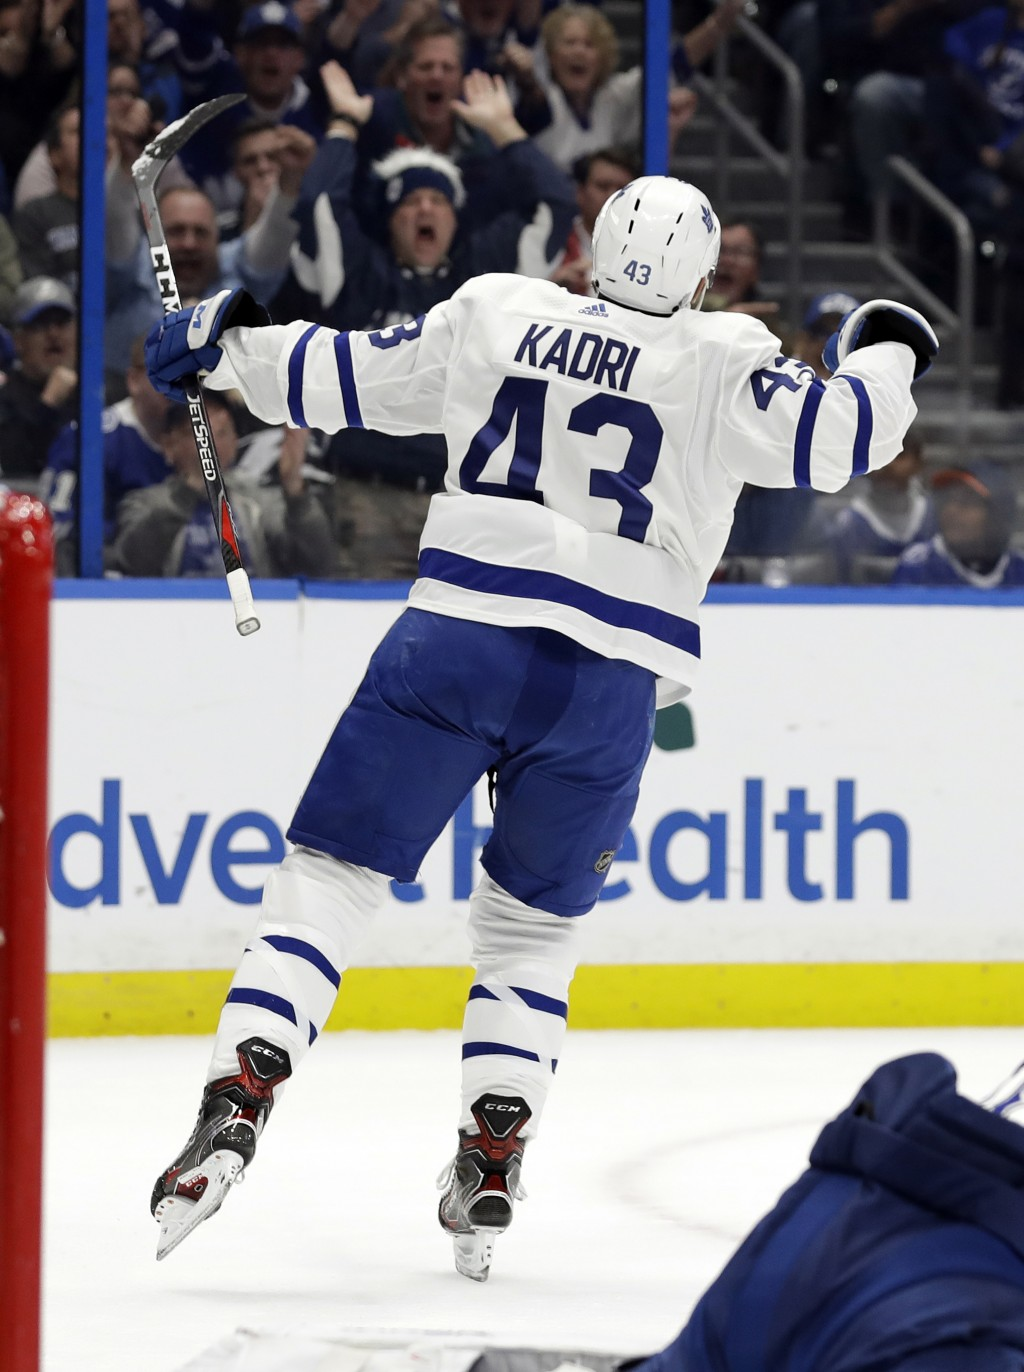 Toronto Maple Leafs center Nazem Kadri (43) celebates his goal against the Tampa Bay Lightning during the first period of an NHL hockey game, Thursday